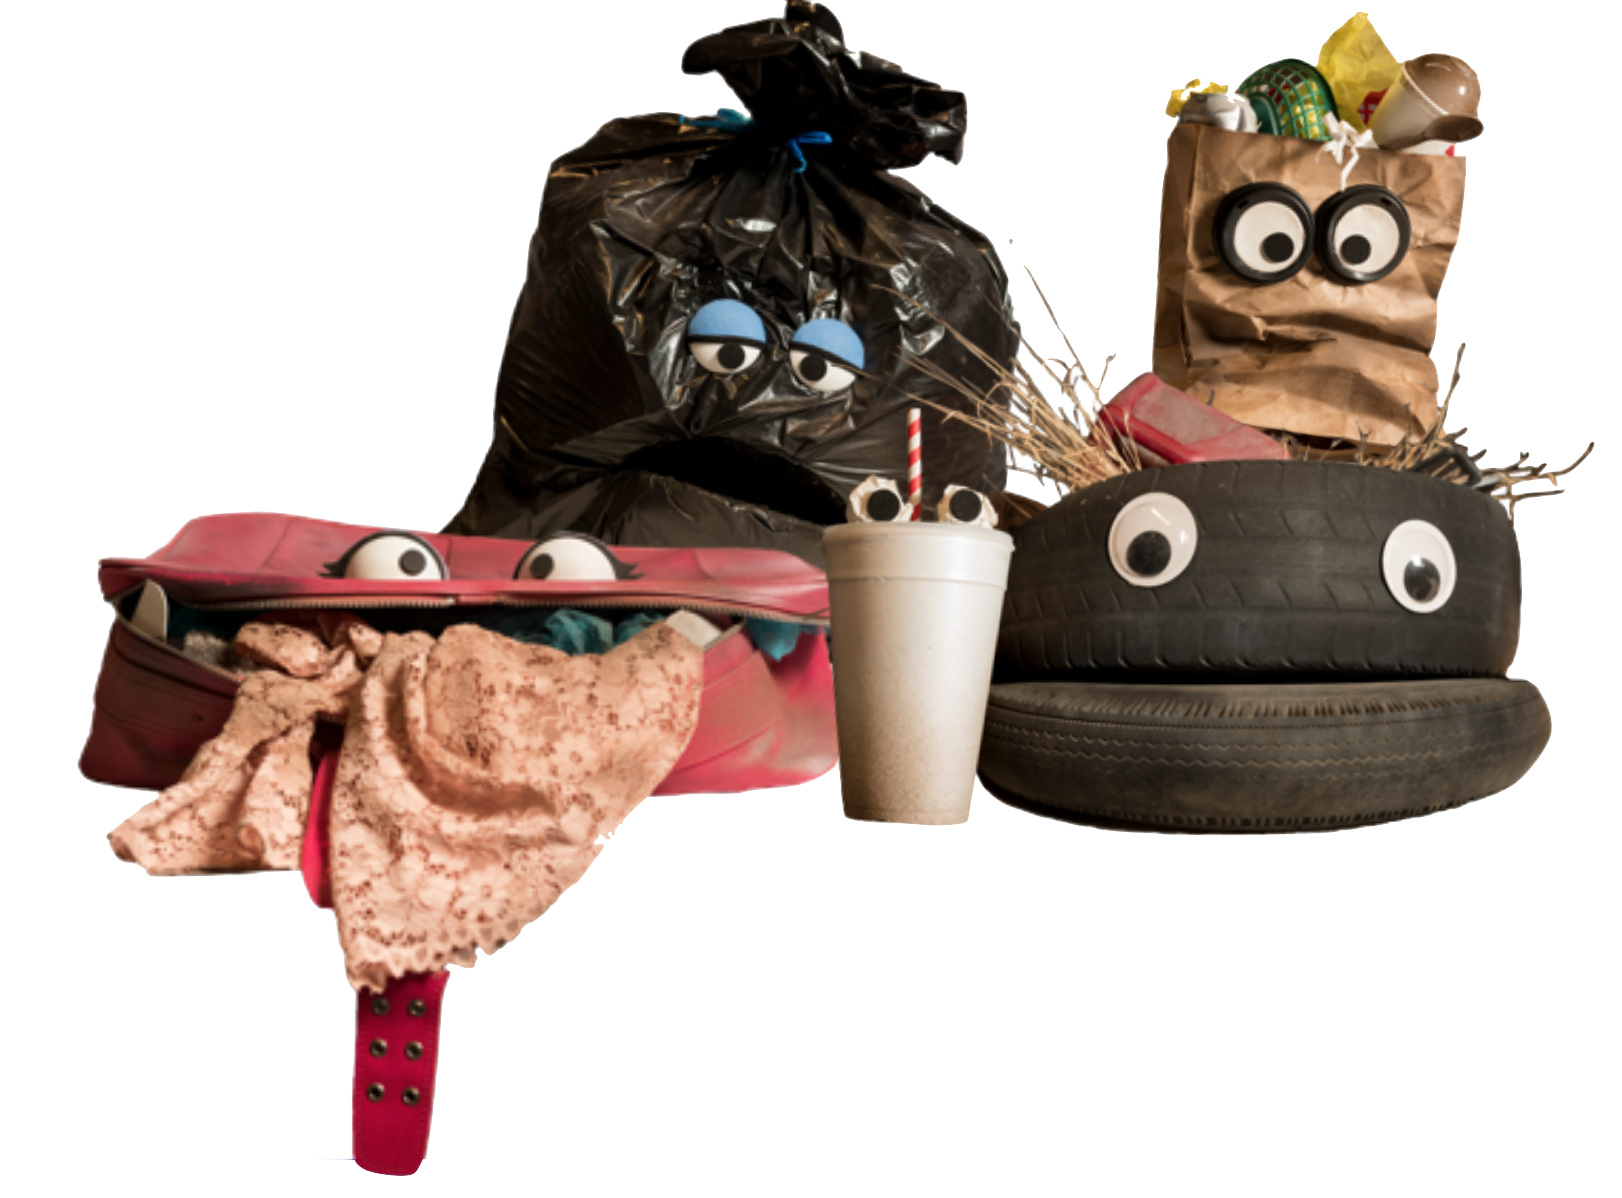 Five puppets: a trash bag, a paper bag, a suitcase, a cup, and a tire.